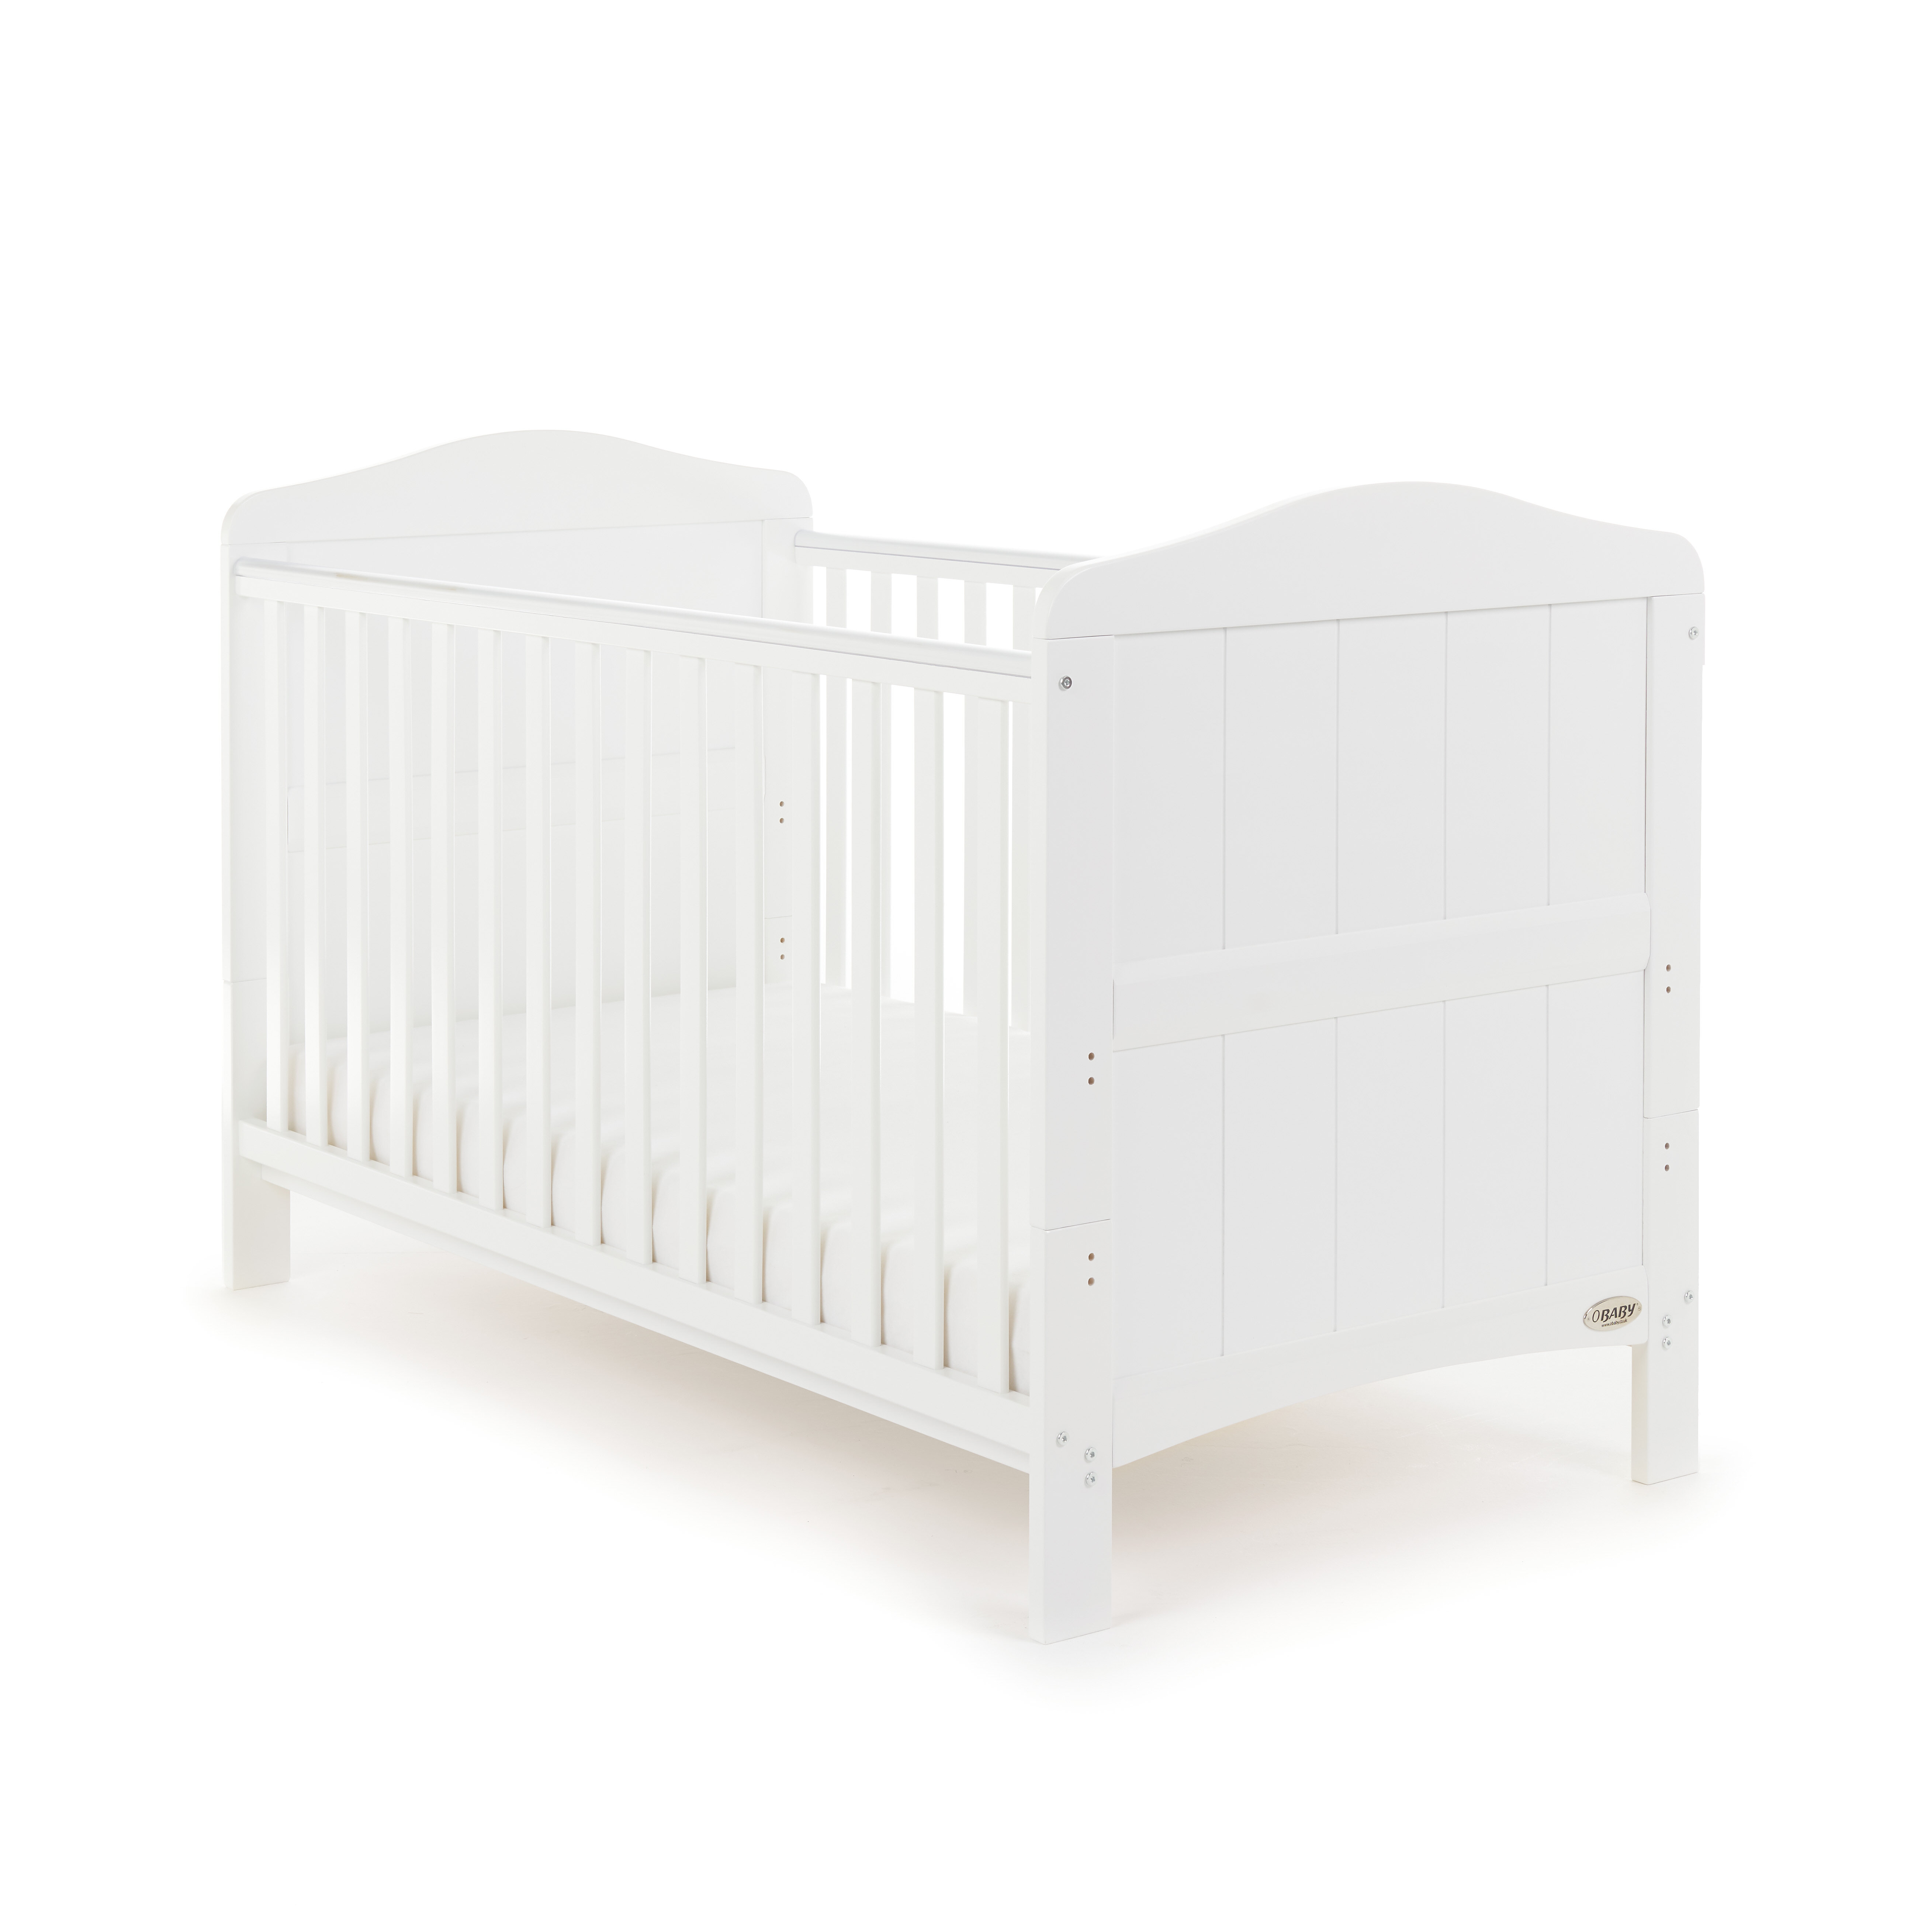 MATTRESS FOR FREE NEW WHITE 2in1 COT-BED 140 x 70 WITH A 12-PIECE BEDDING no 9